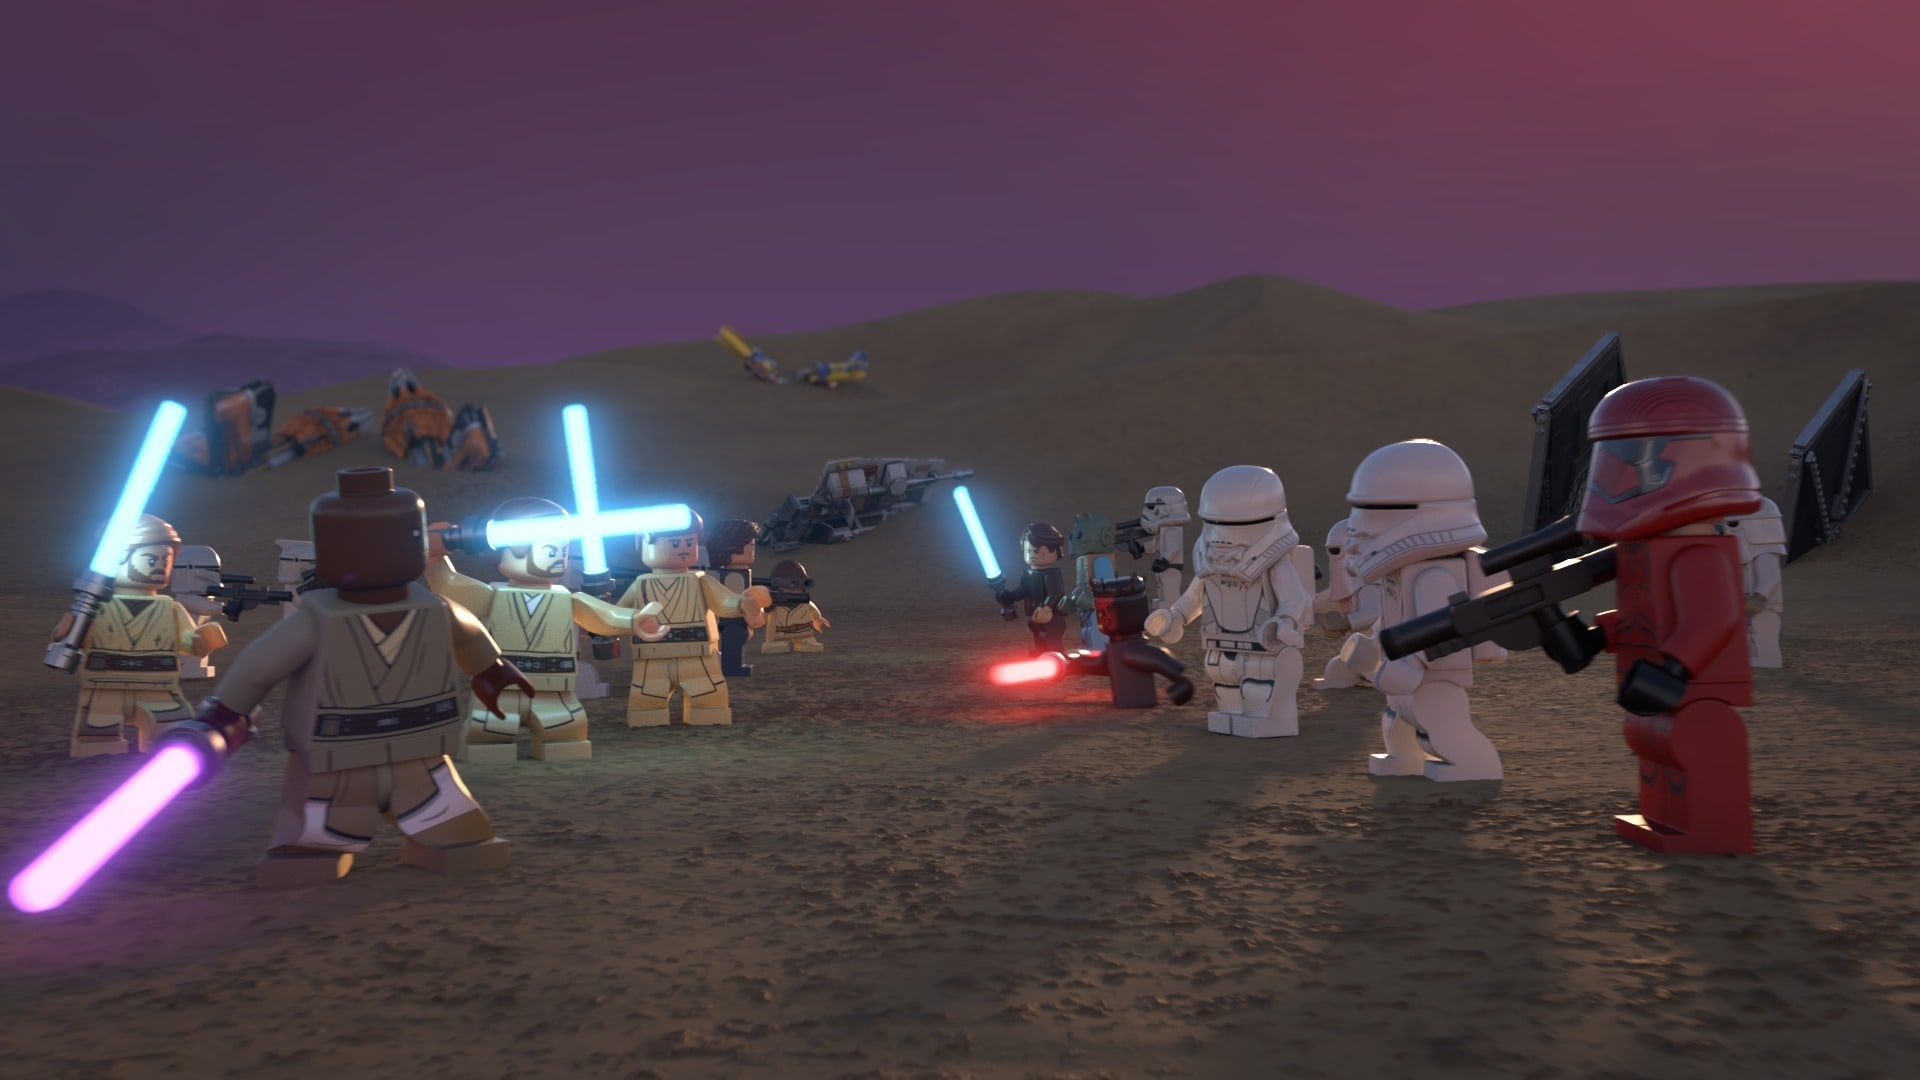 LEGO Star Wars Holiday Special Image